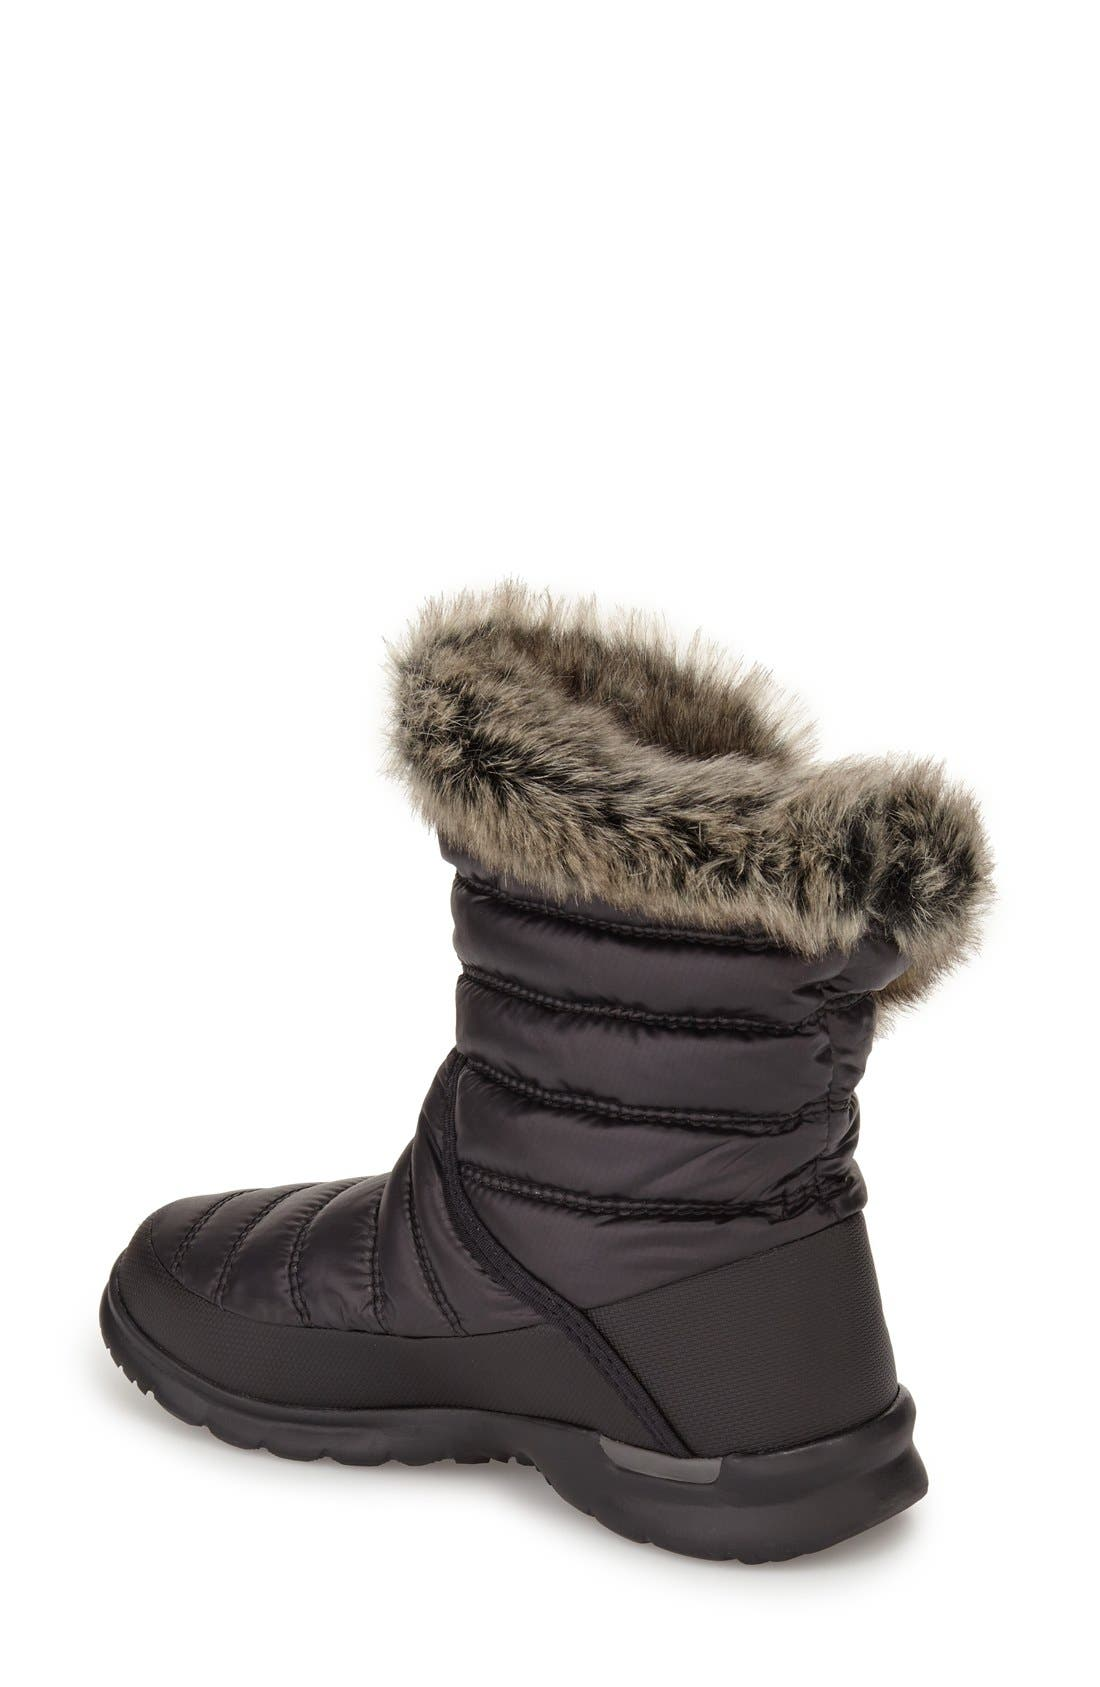 Microbaffle Waterproof ThermoBall<sup>®</sup> Insulated Winter Boot,                             Alternate thumbnail 2, color,                             Black/ Smoked Pearl Grey